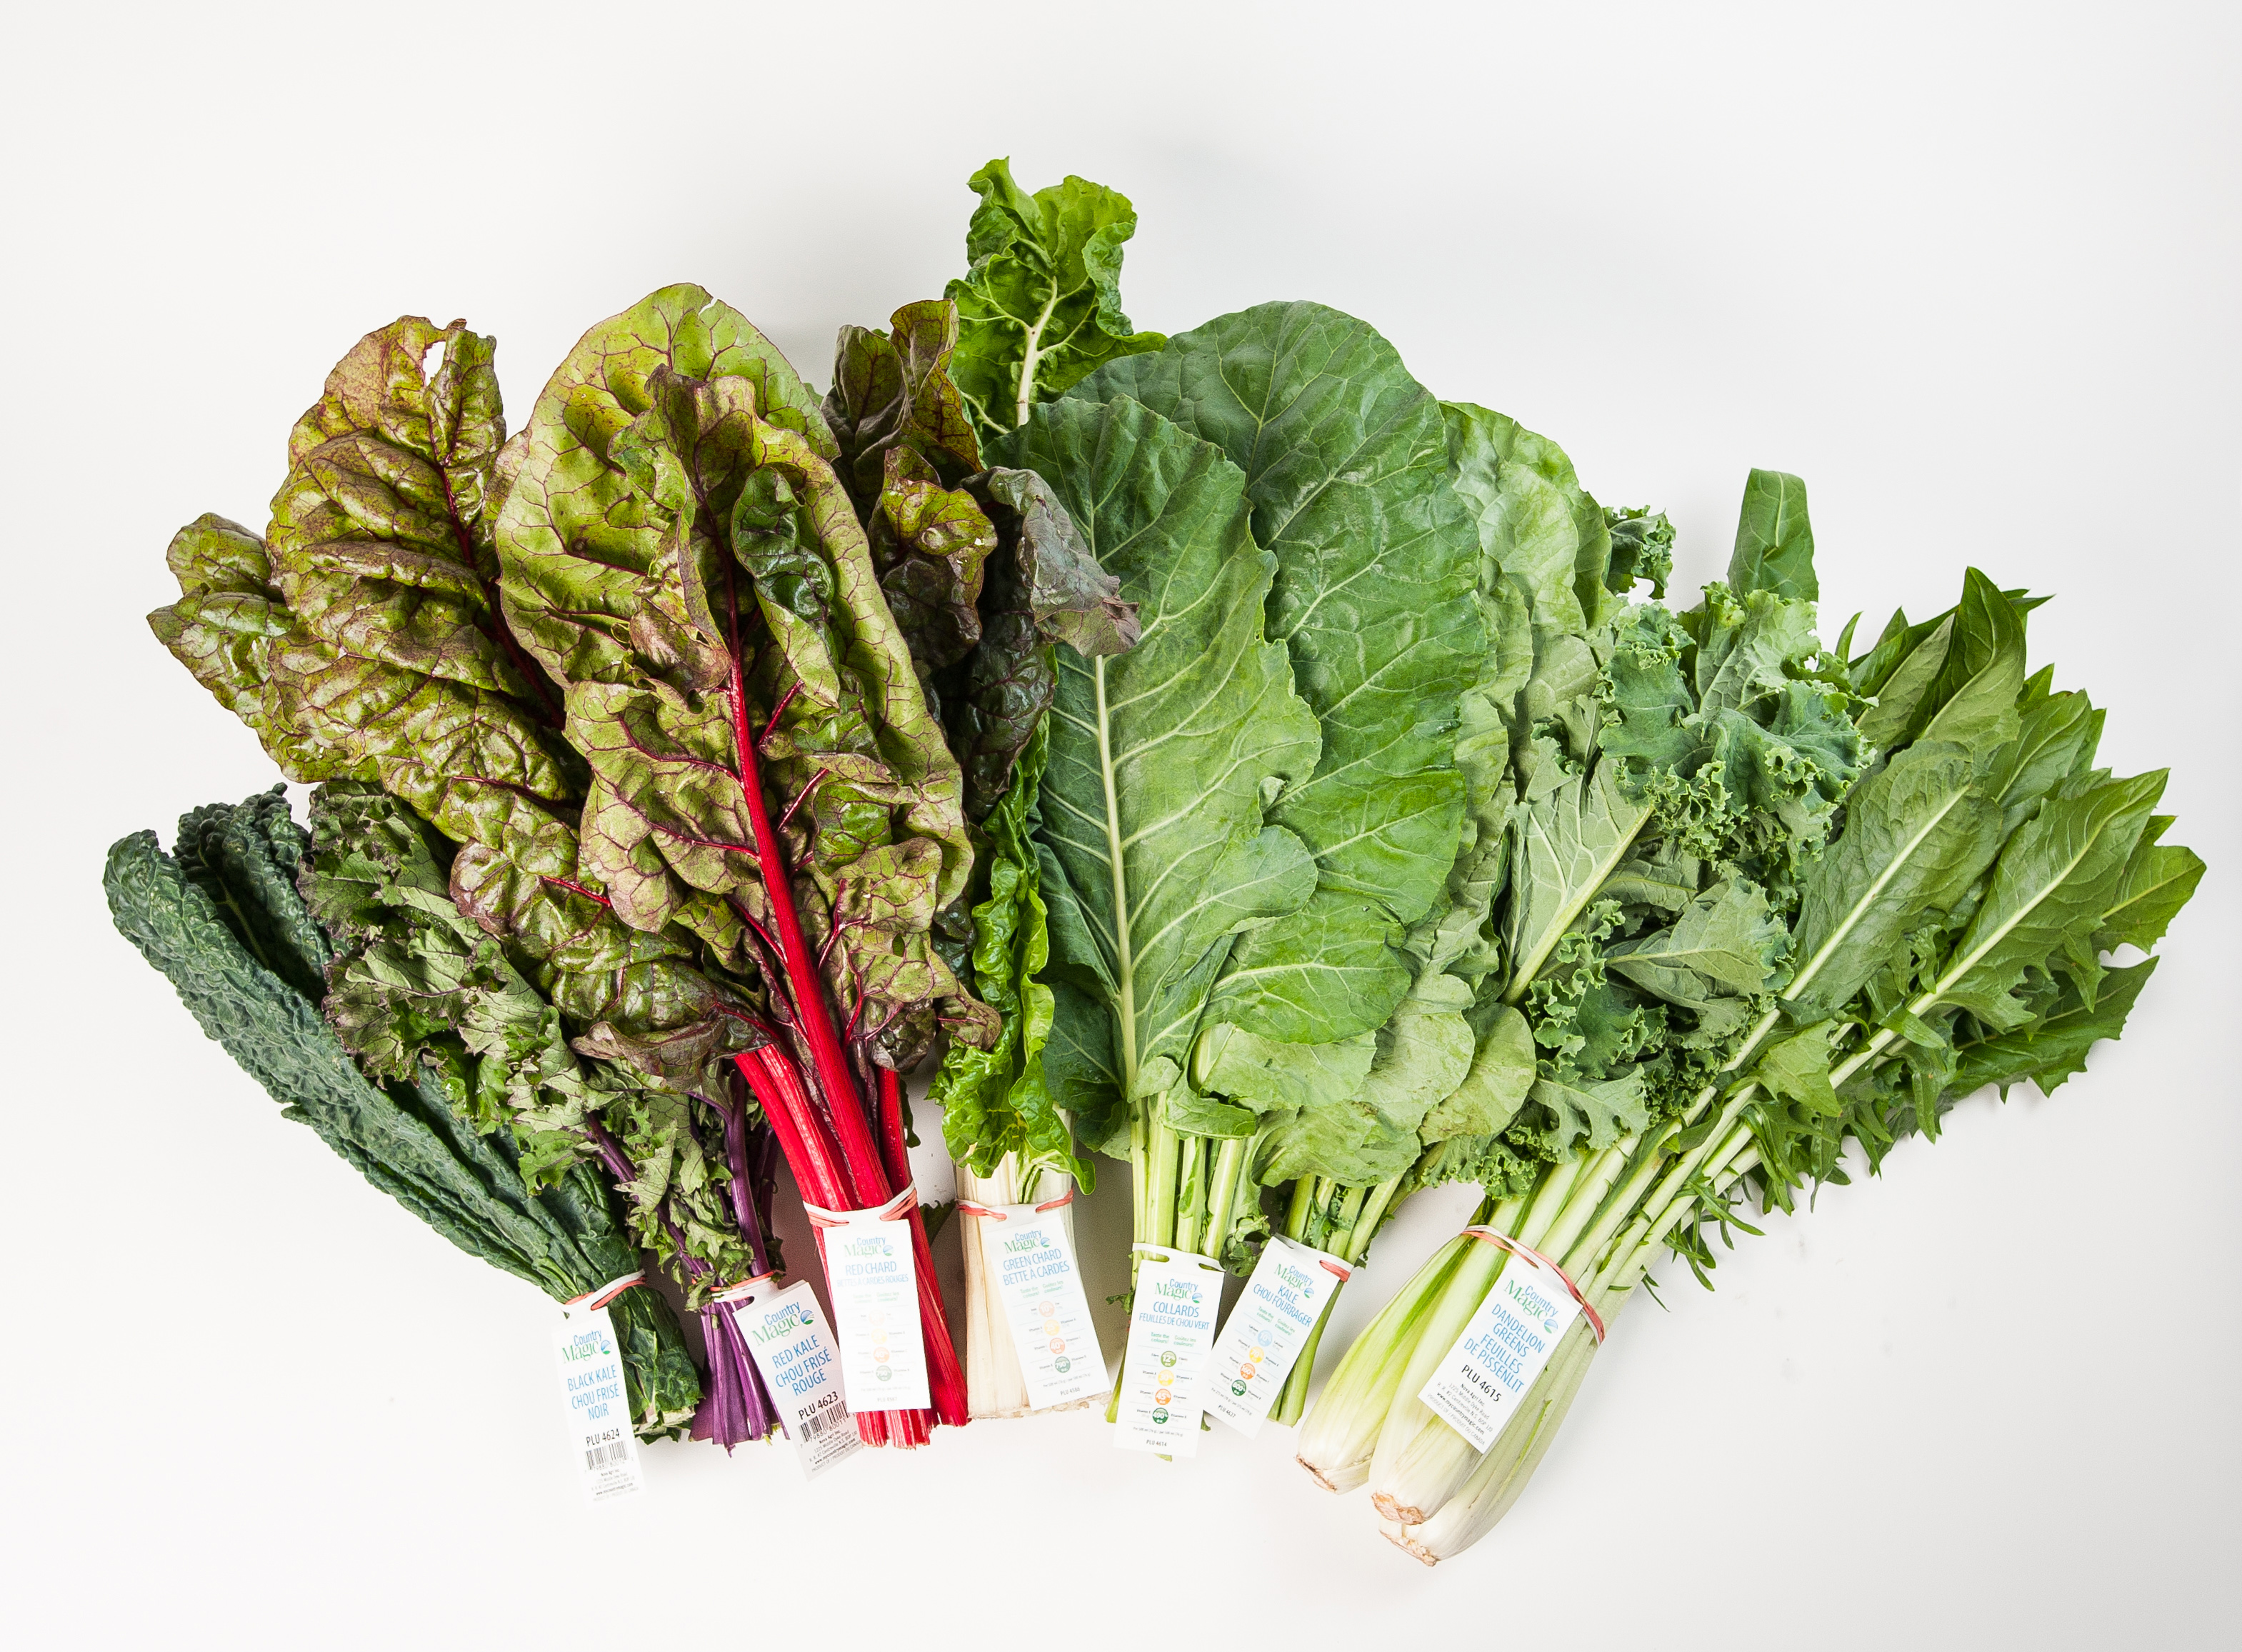 Country Magic greens, black kale, red chard, green kales collard greens, dandelion greens